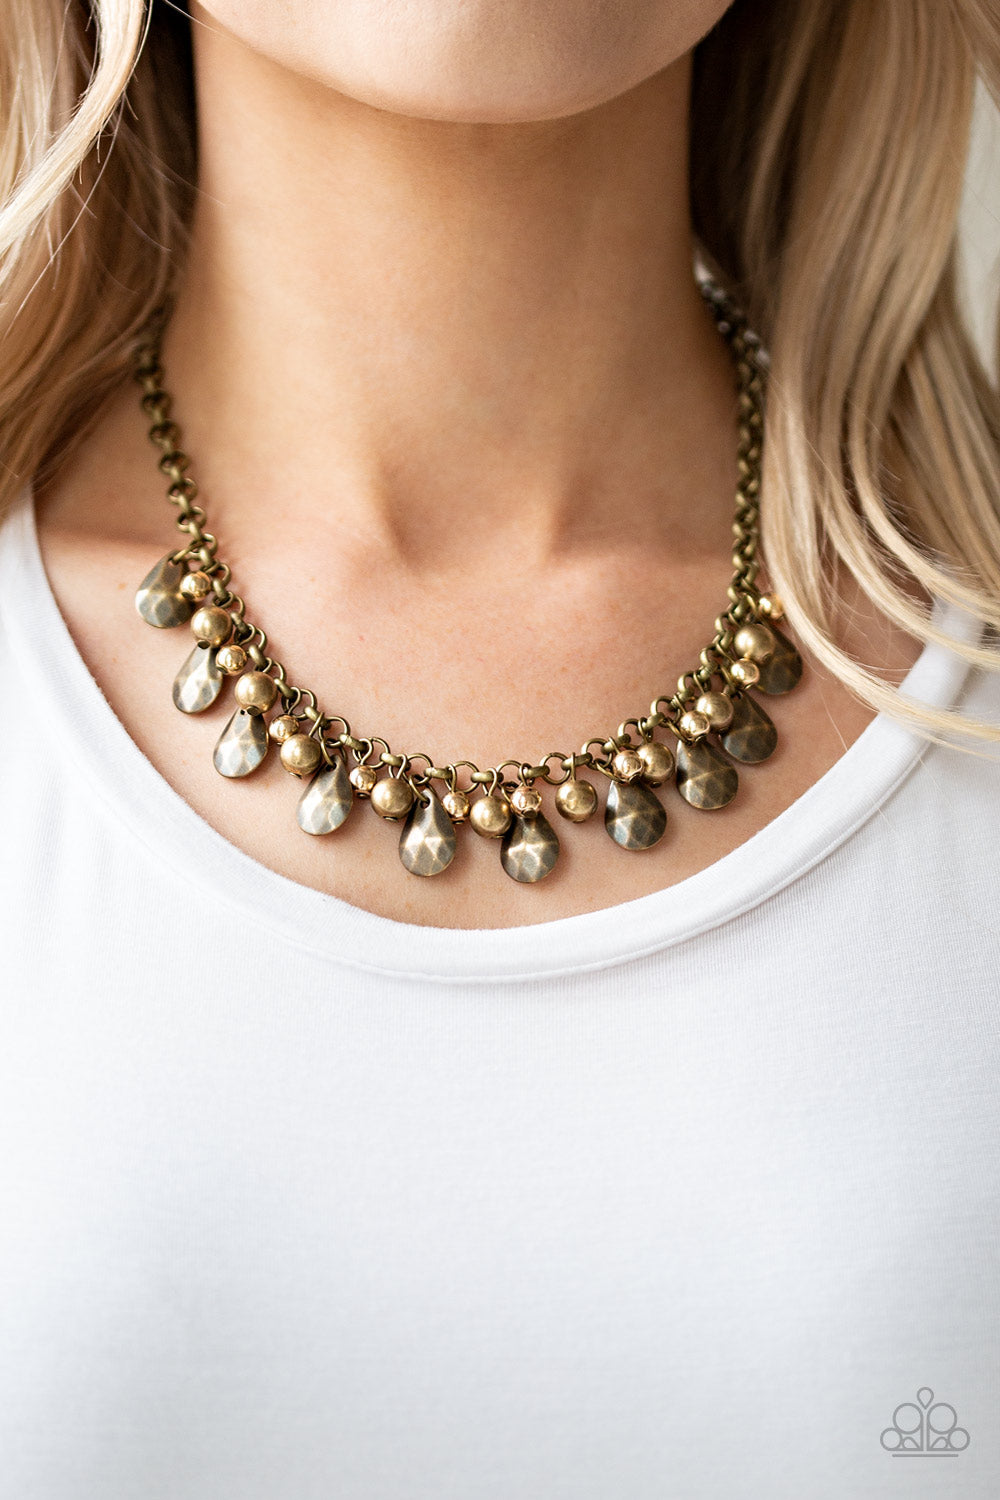 Paparazzi Jewelry & Accessories - Stage Stunner - Brass Bead Necklace. Bling By Titia Boutique